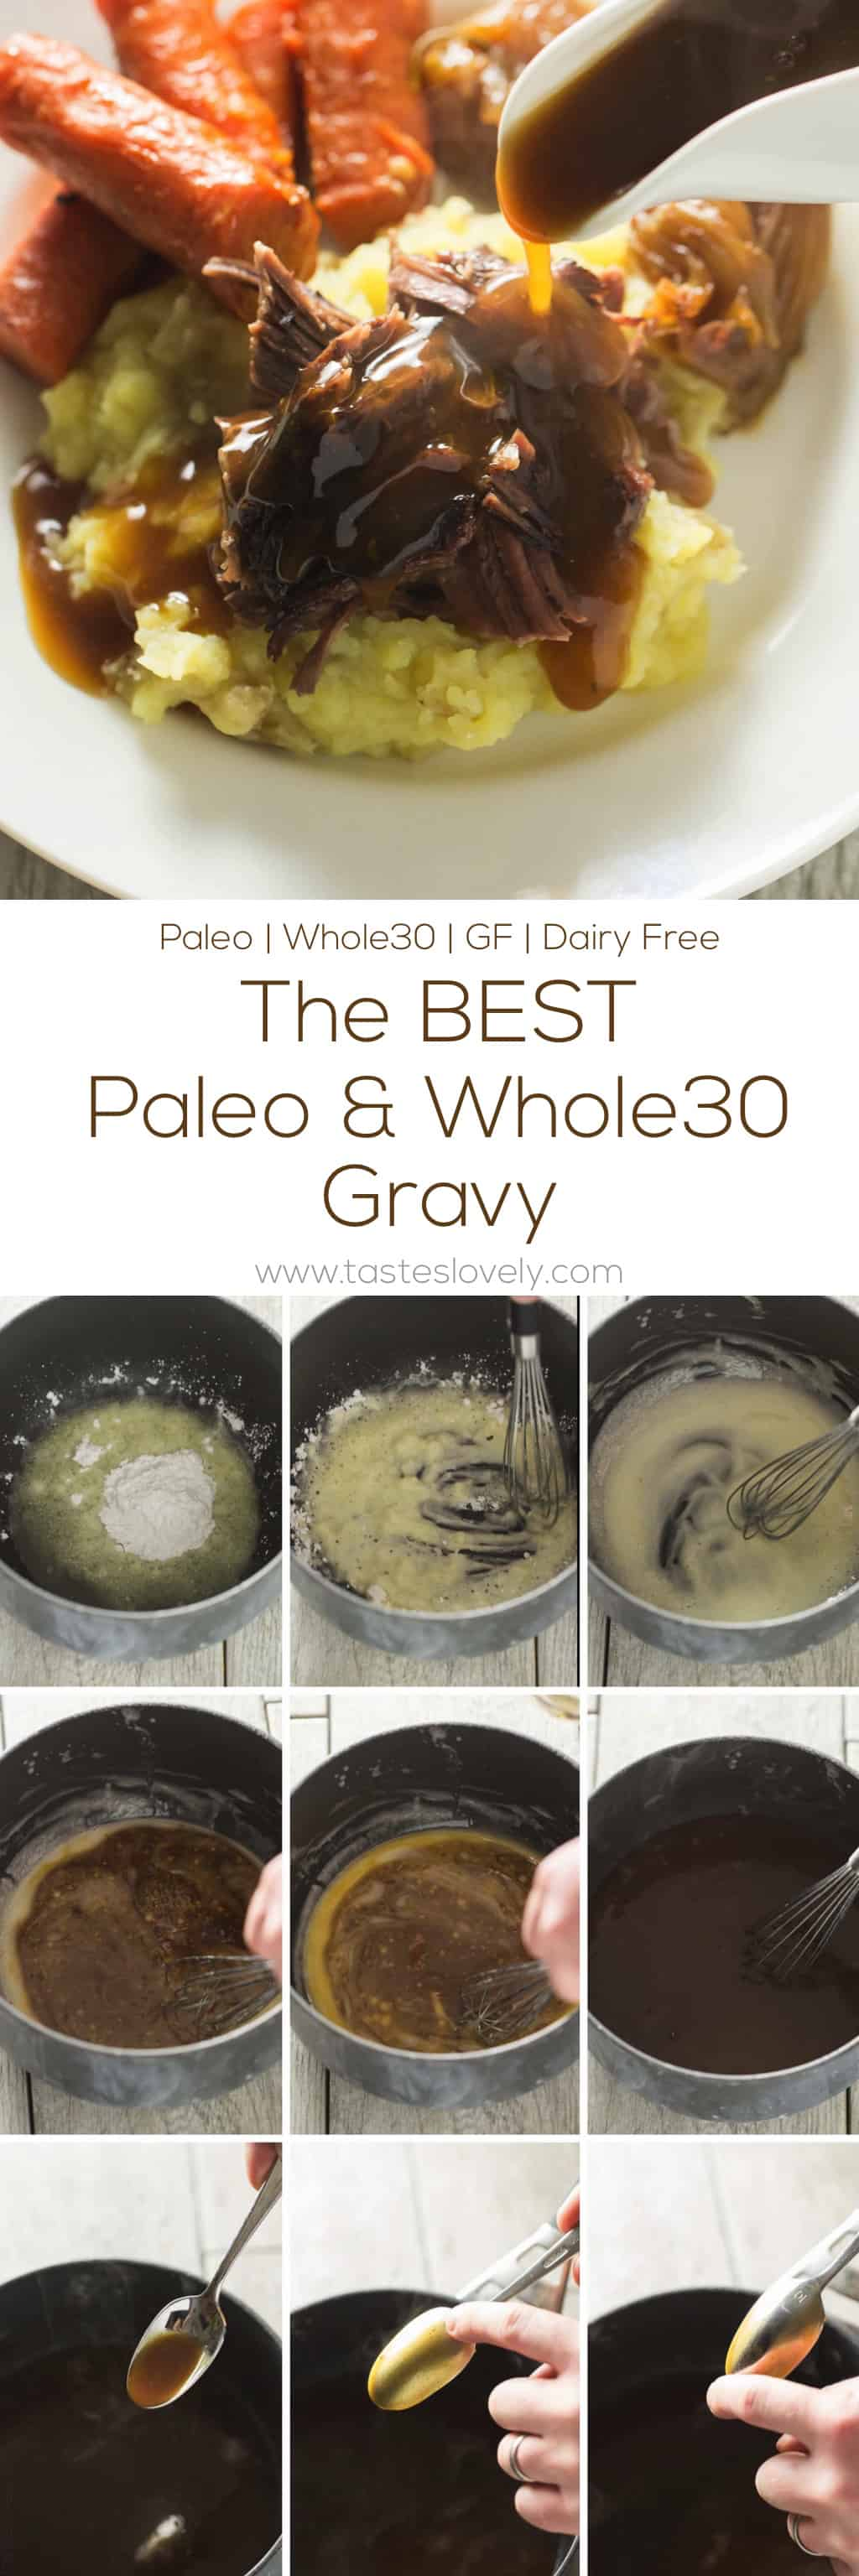 The BEST Paleo & Whole30 gravy - you would never guess this was flour free, butter free, gluten free! Just 3 ingredients and 5 minutes.